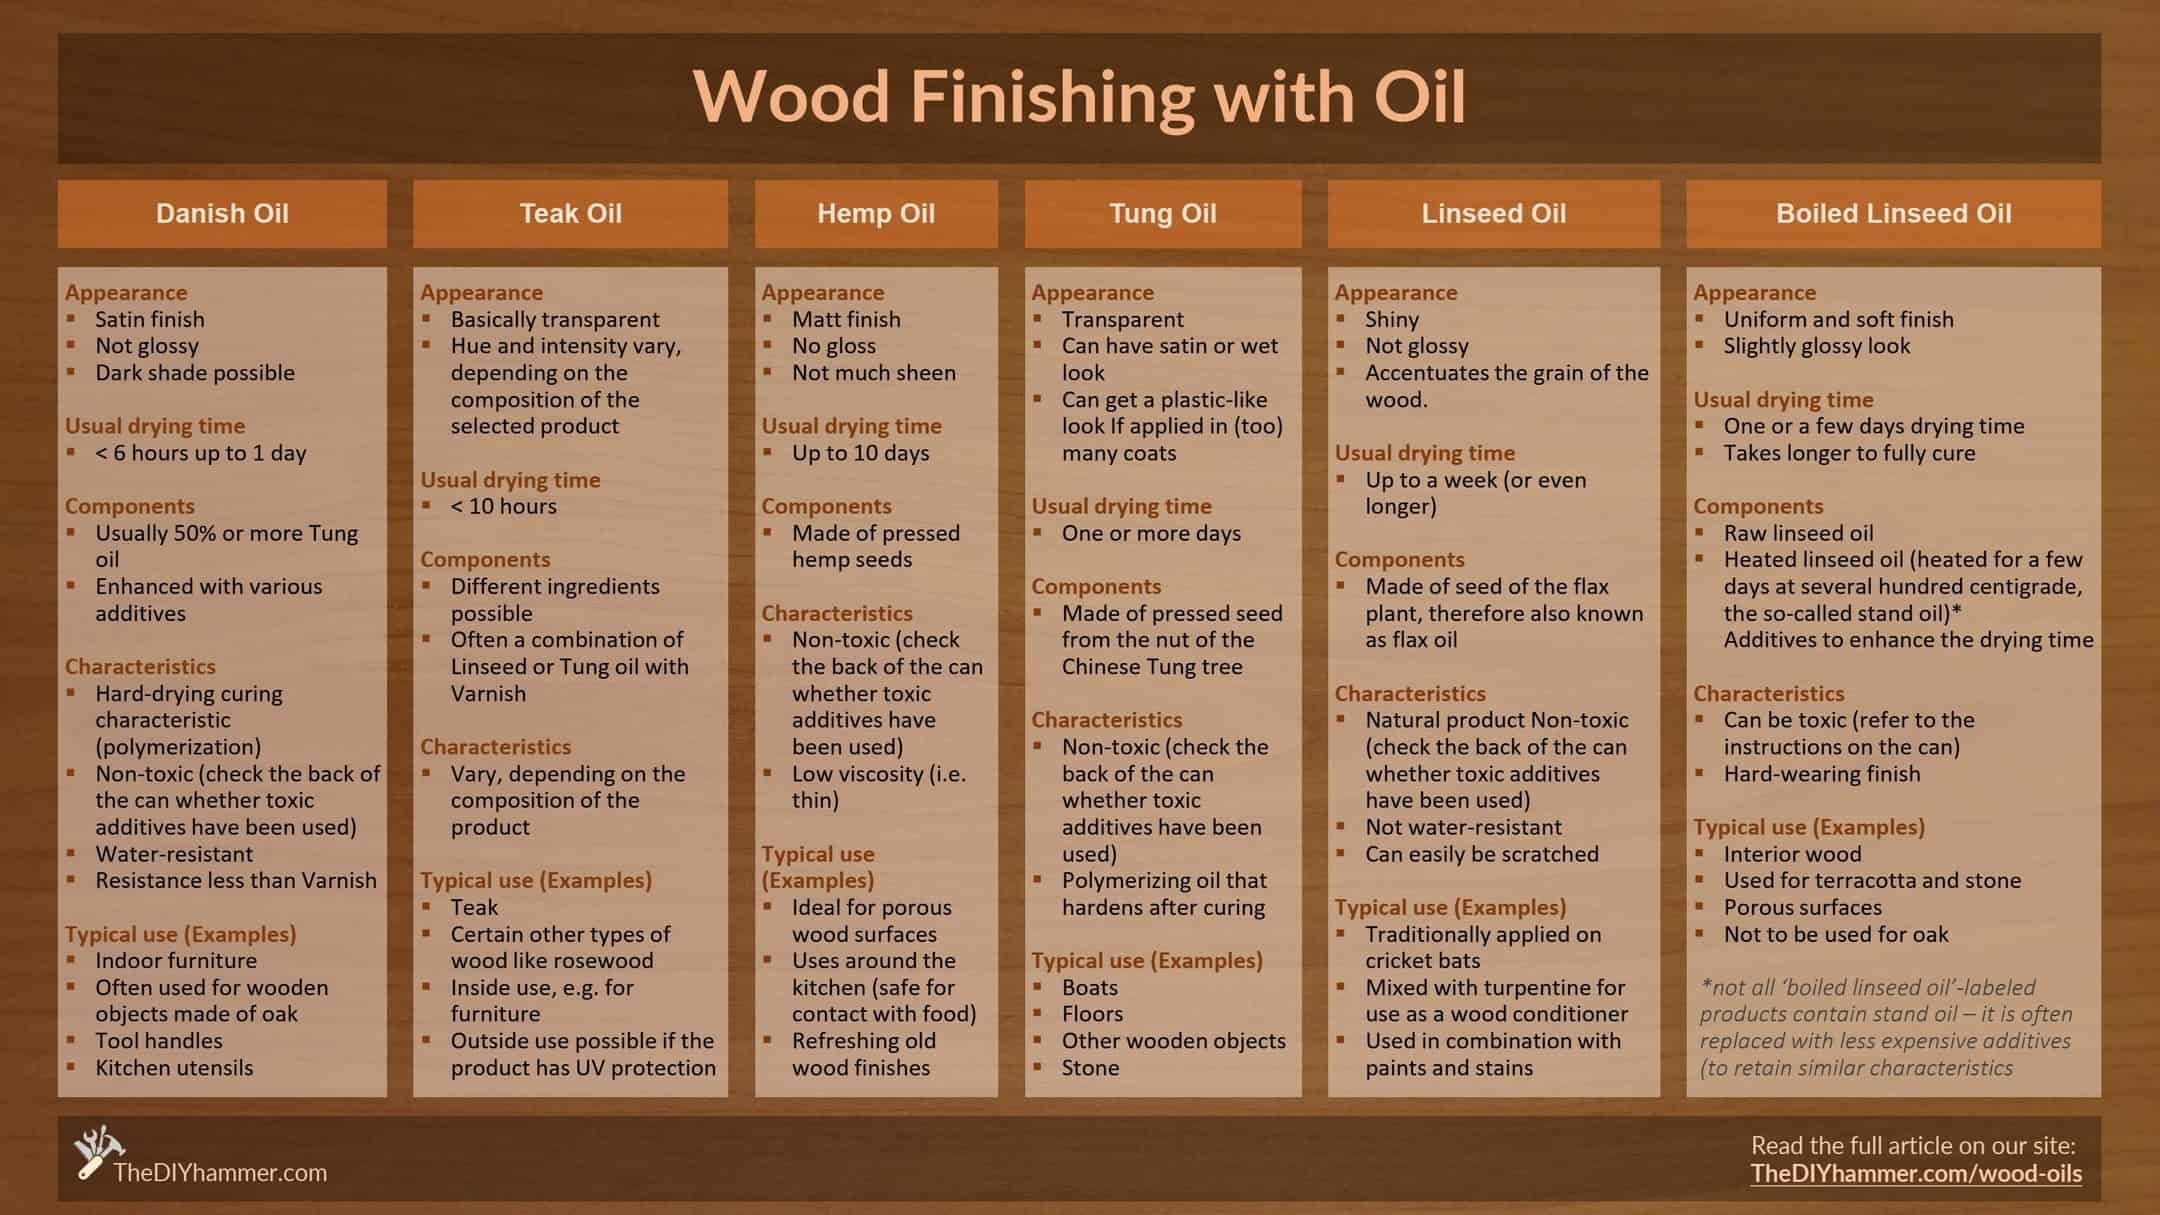 Wood Oils Overview